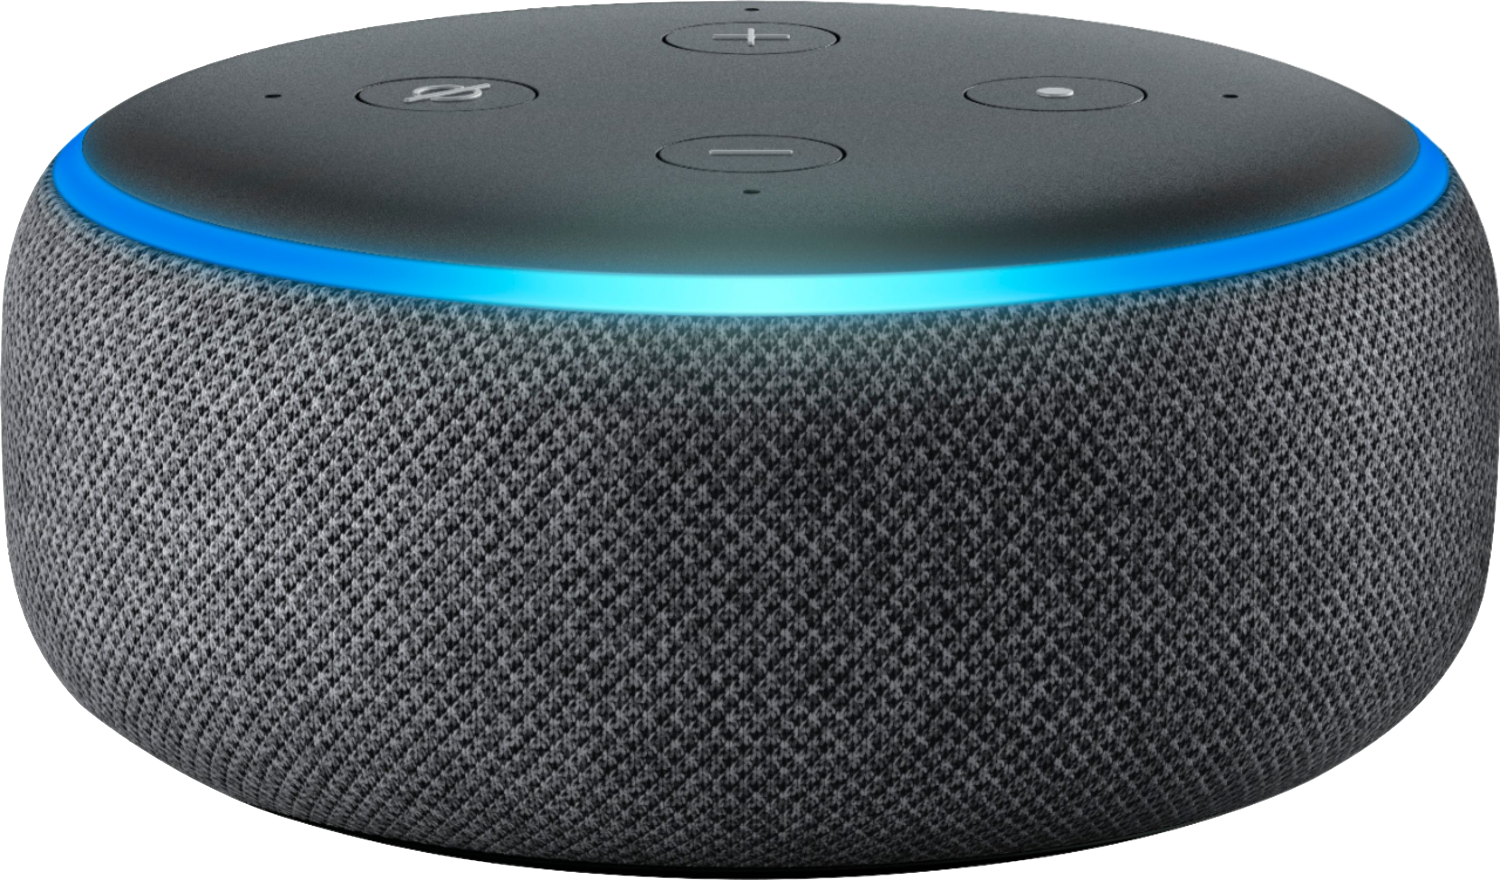 A picture of an Amazon Echo Dot